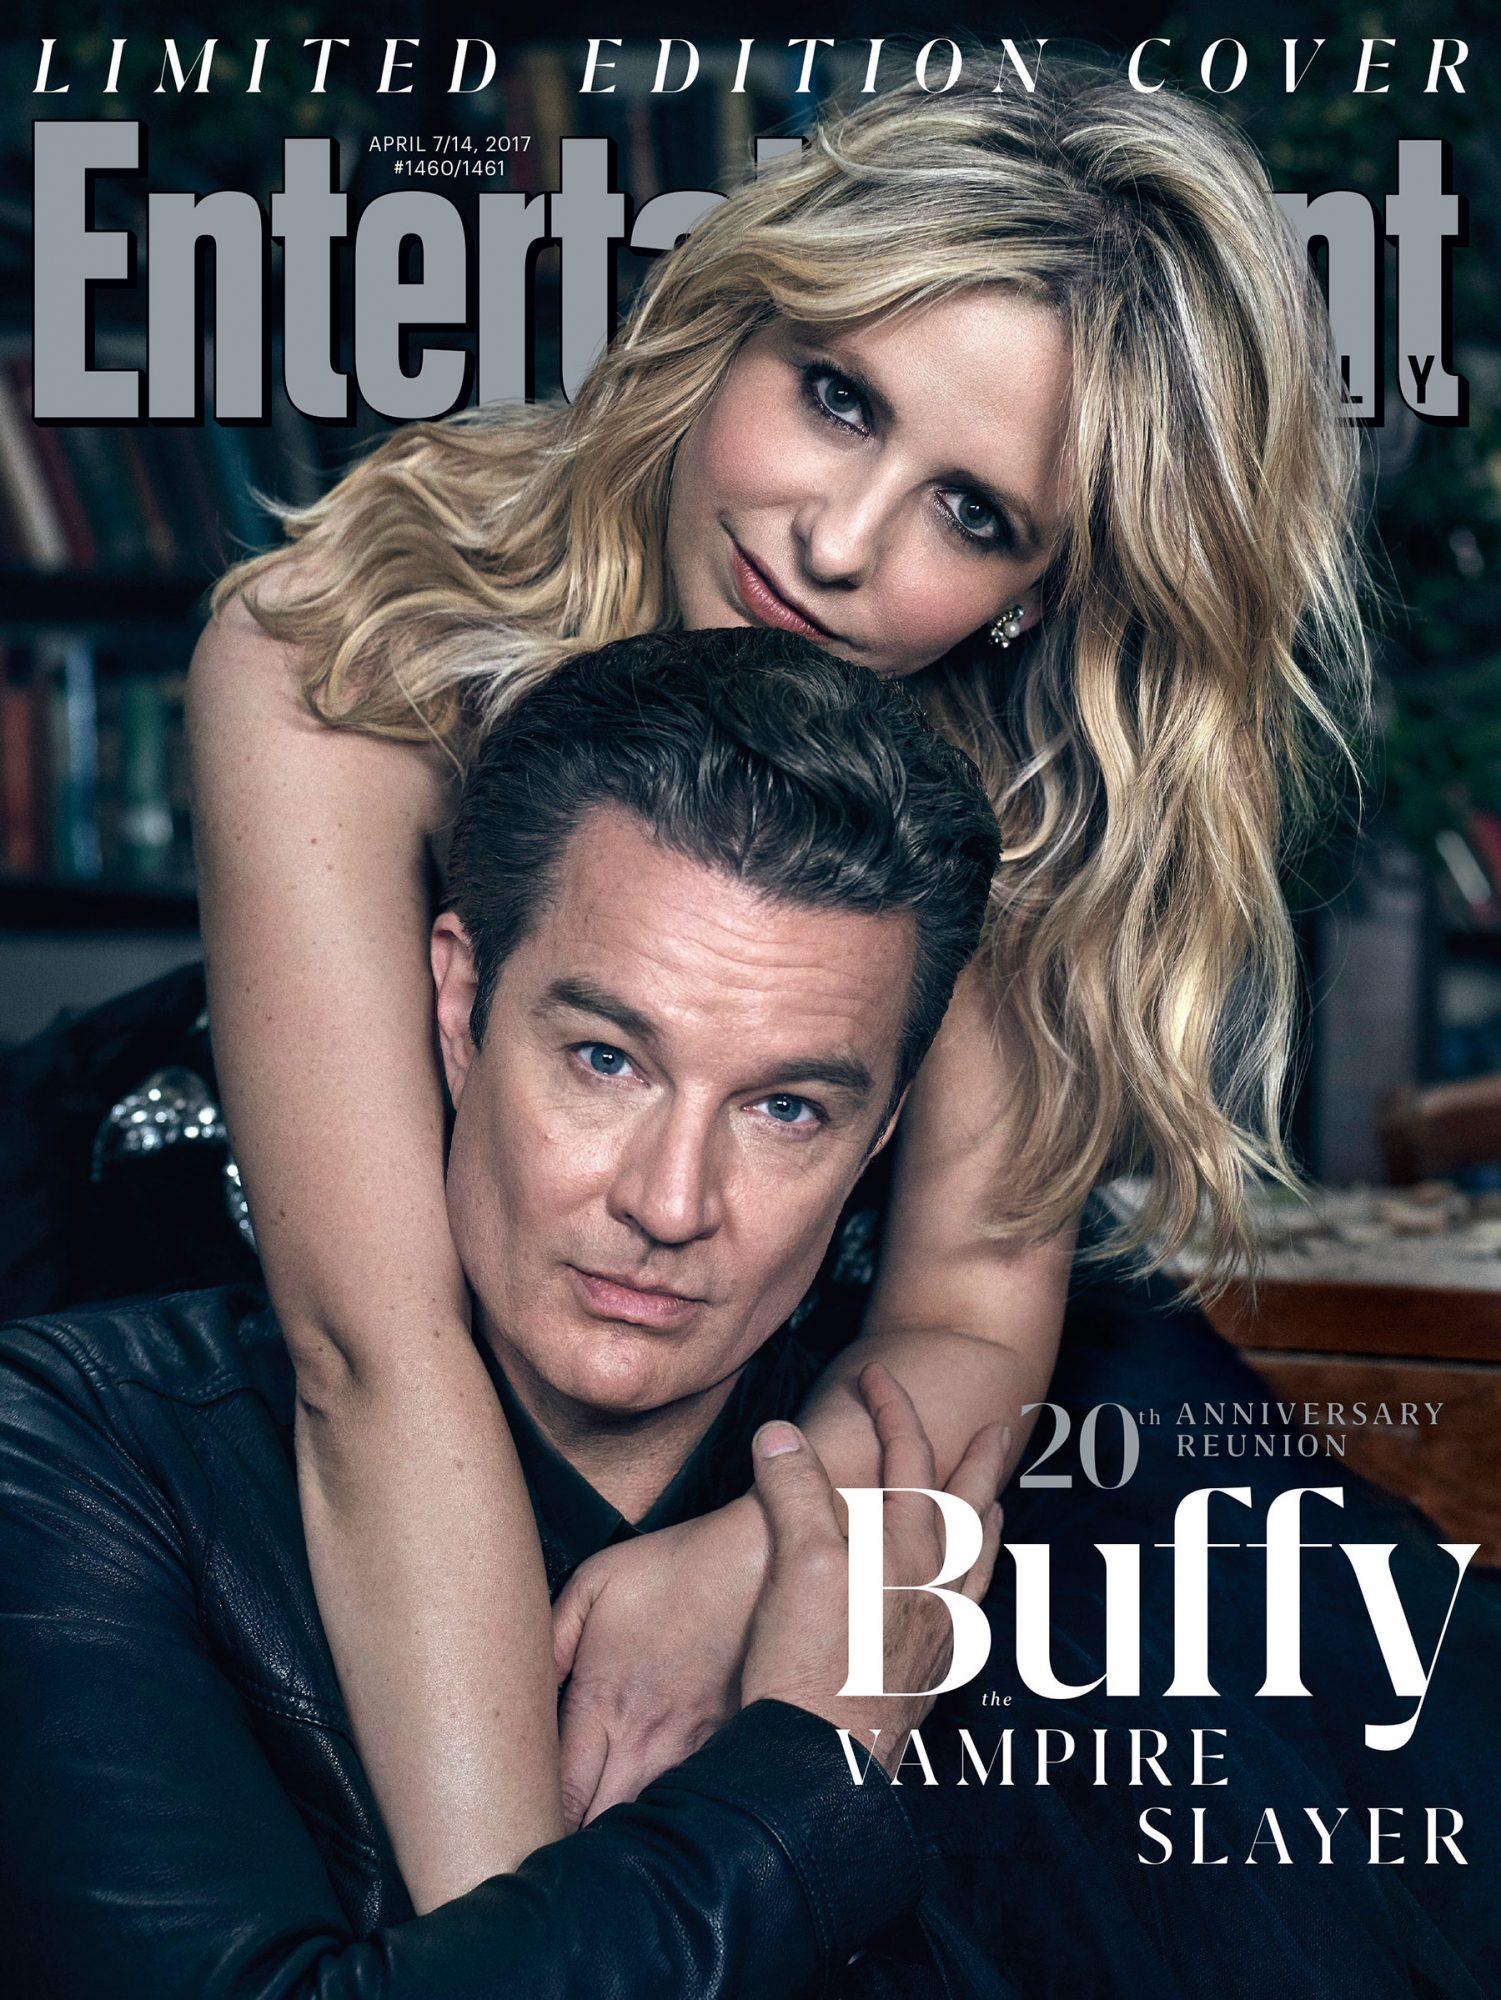 Sarah Michelle Gellar and James Marsters on the Cover of EW